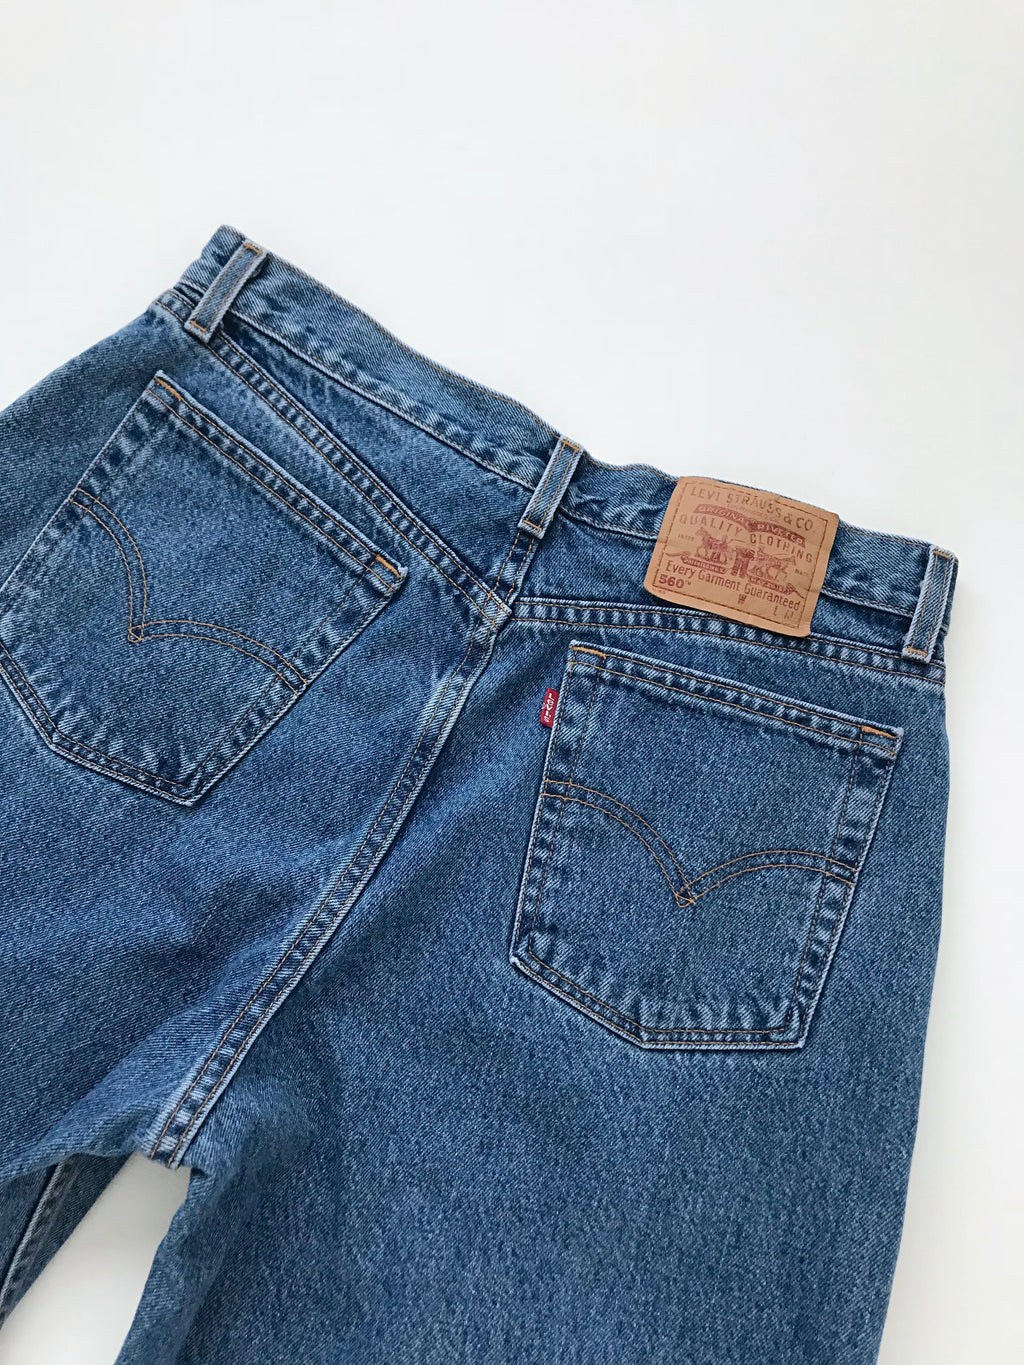 Women's Vintage Levi's 560 Cotton Denim Jeans | 34 Inch Waist | Canary Club Vintage